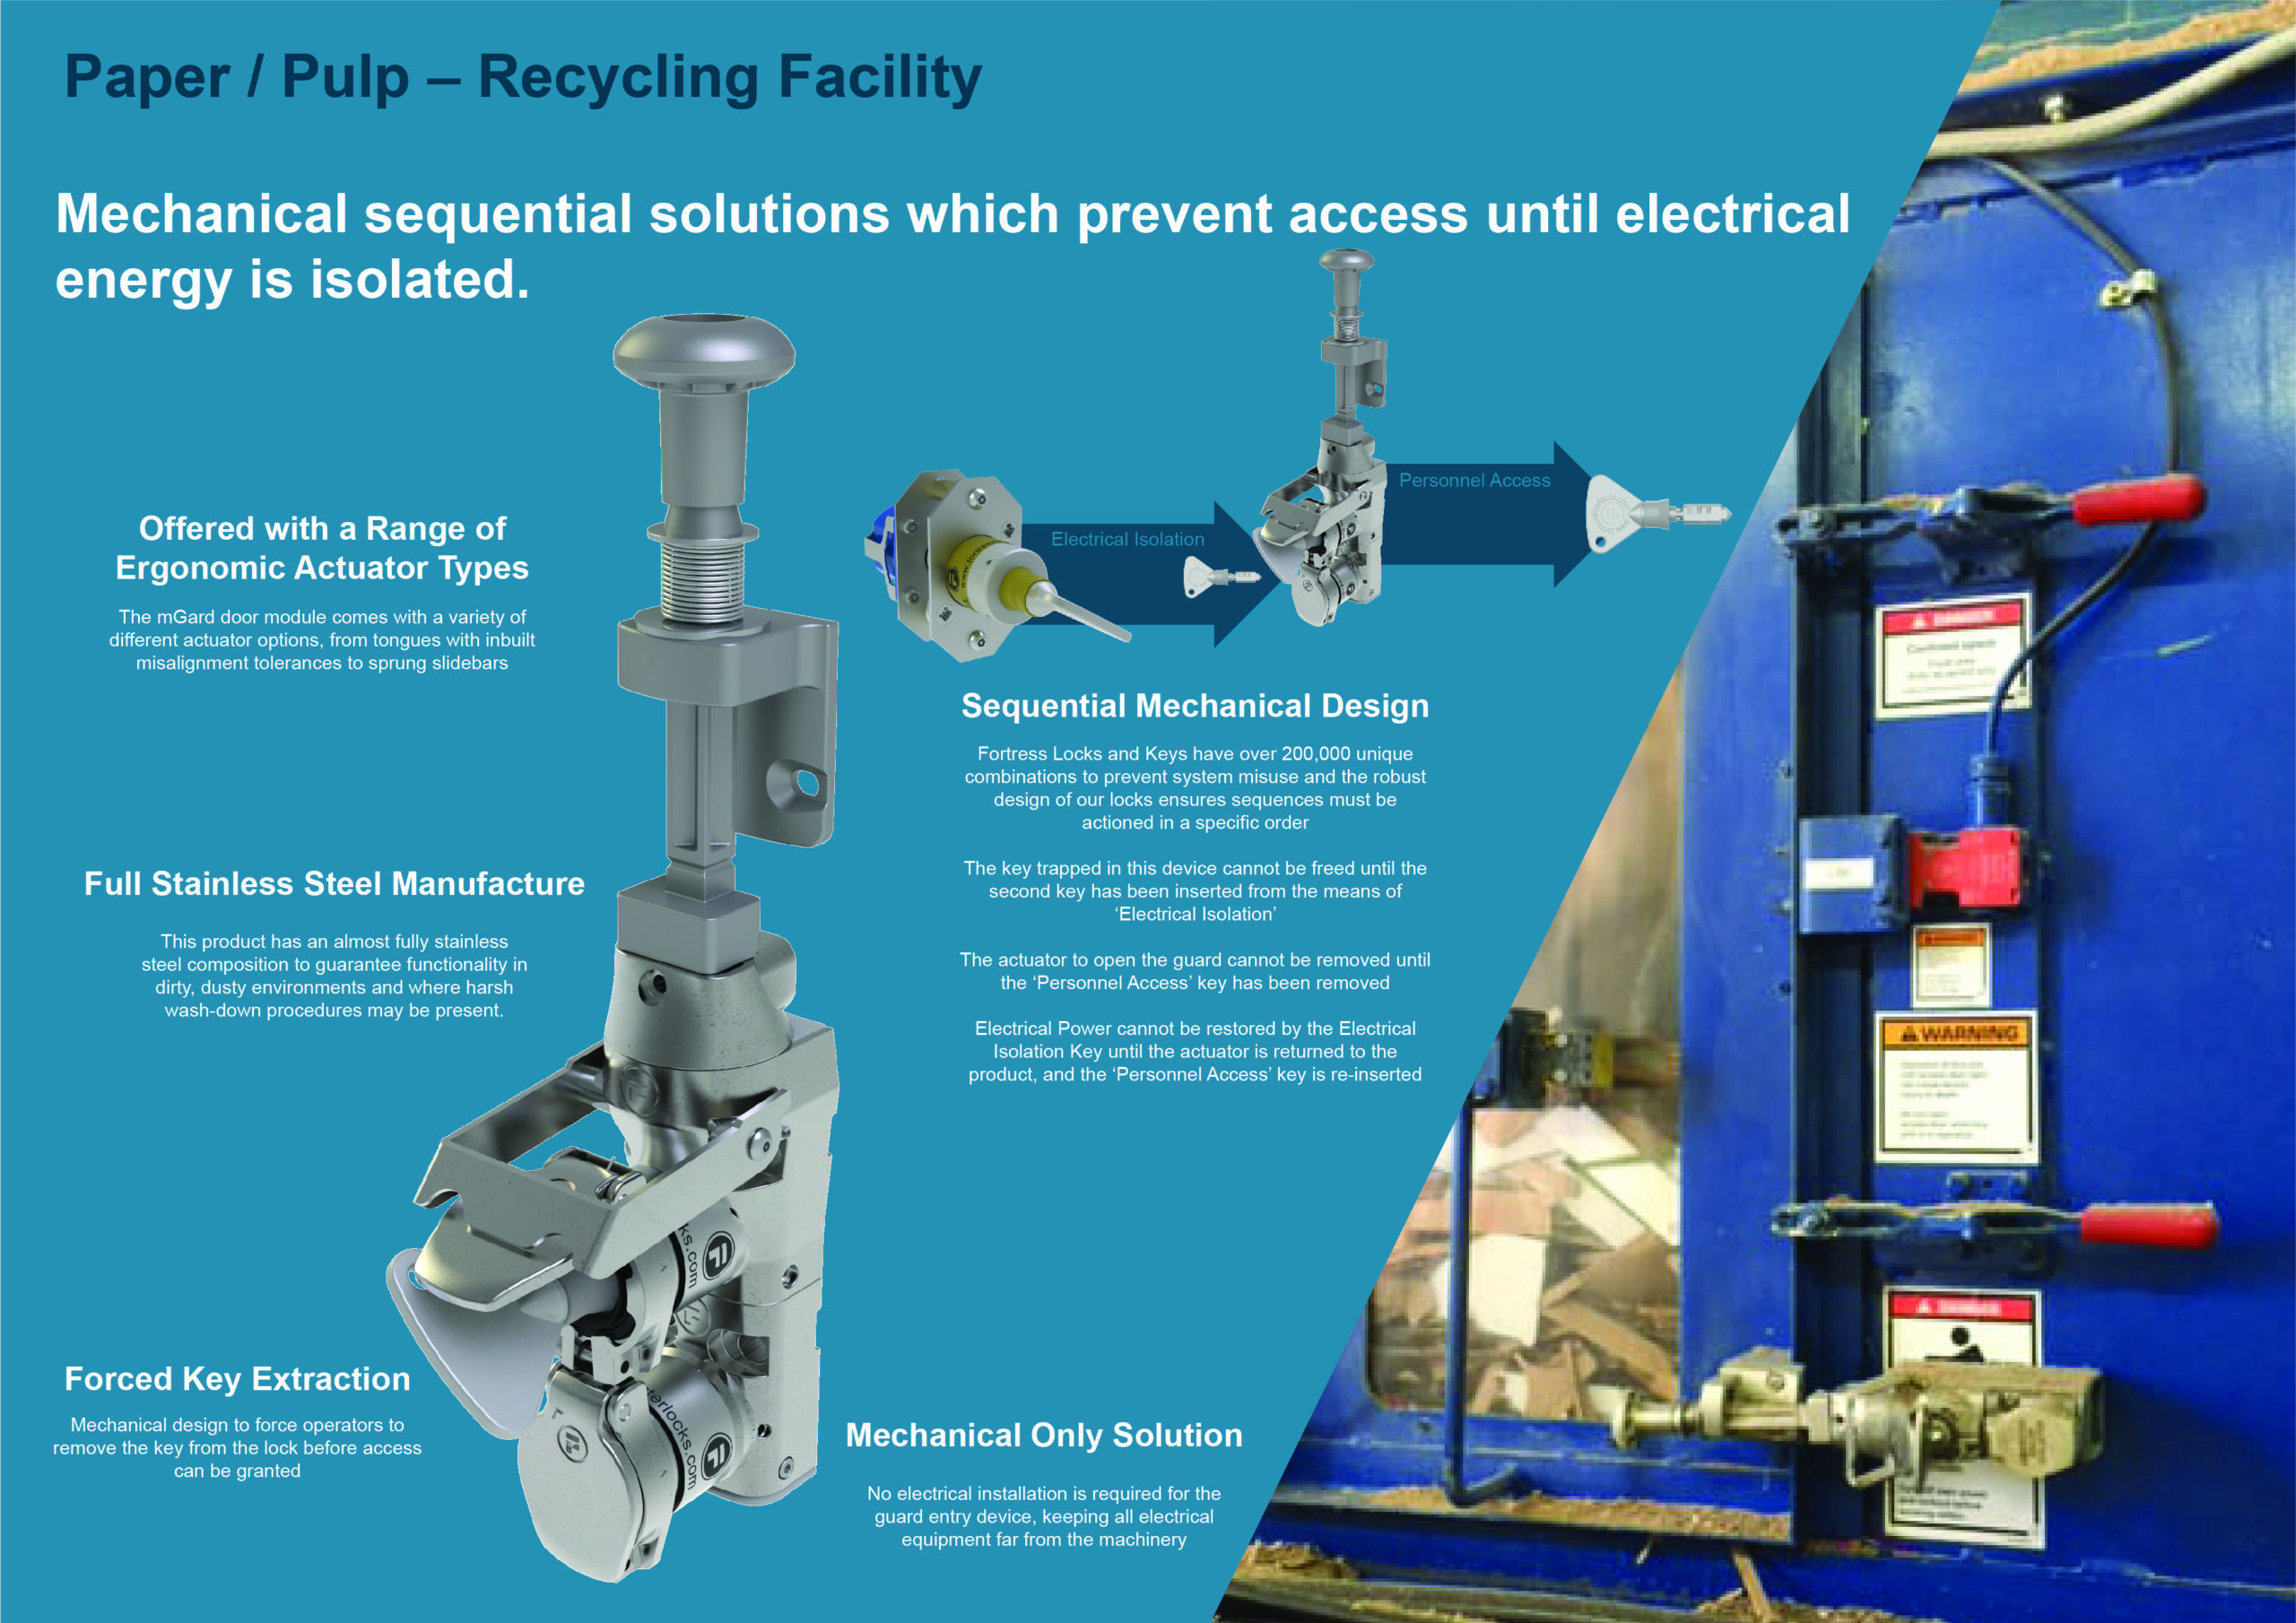 Paper / Pulp – Recycling Facility